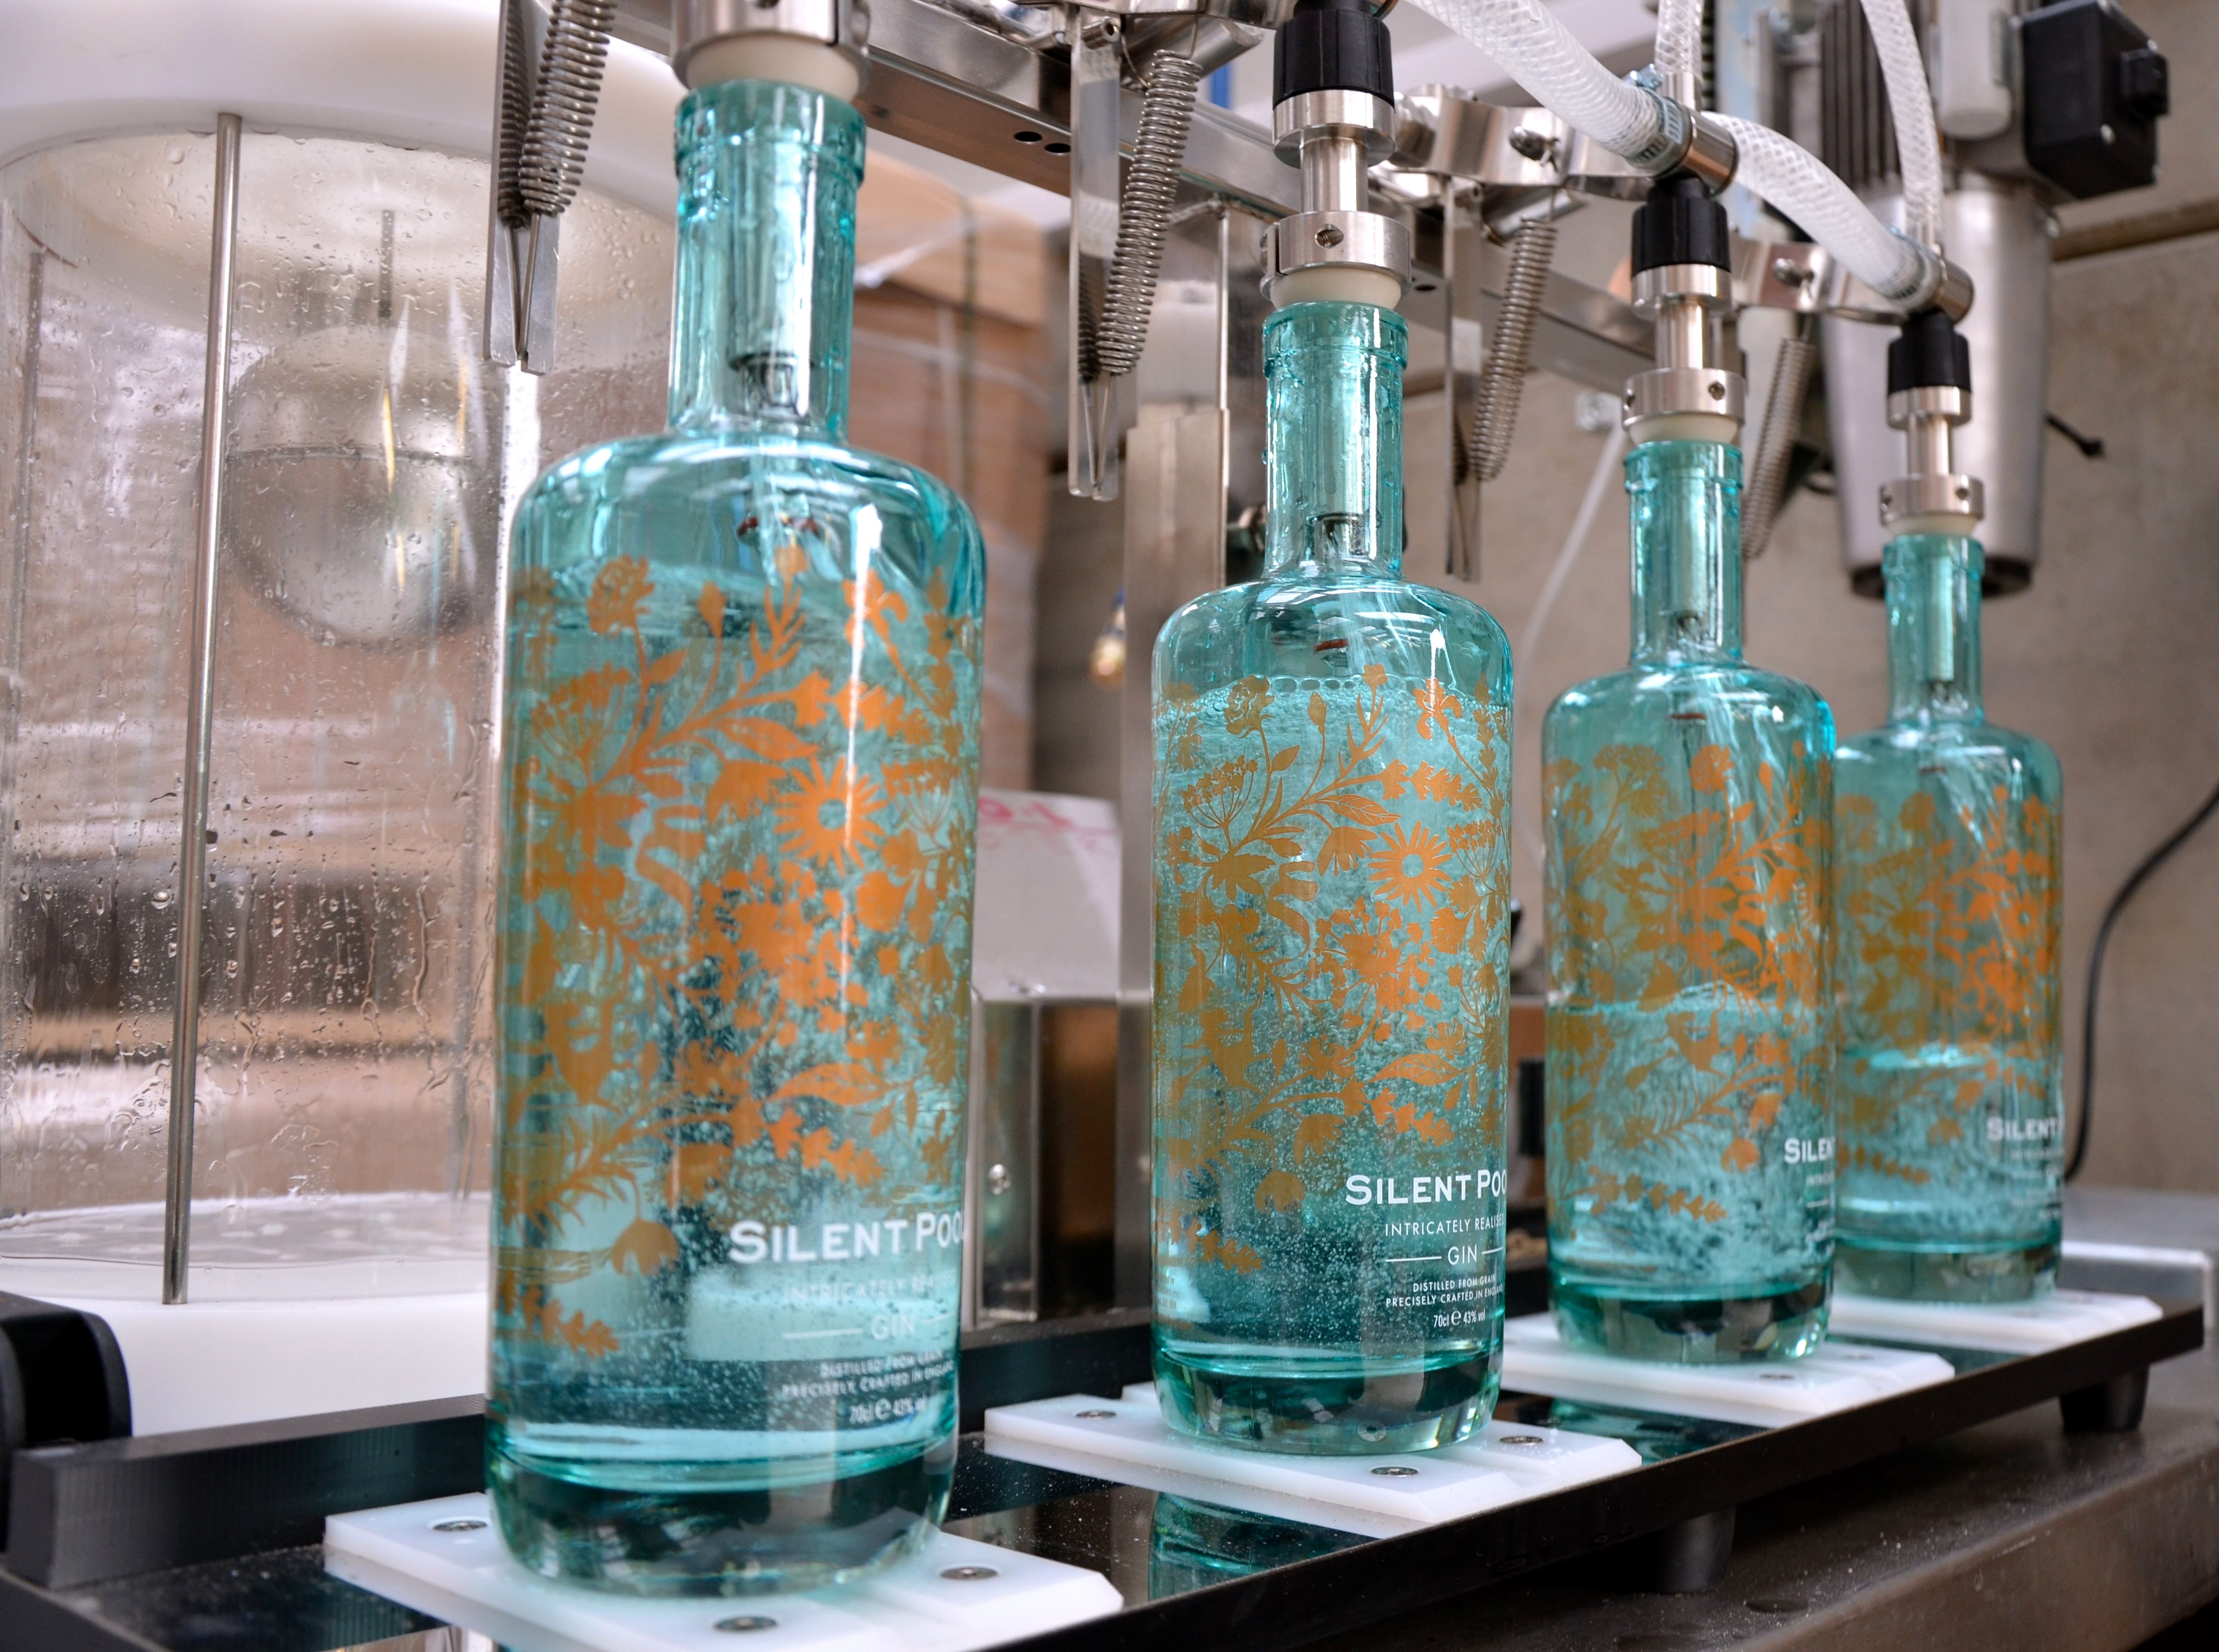 Silent pool distillery wins its first international awards surrey hills - Silent pool gin ...